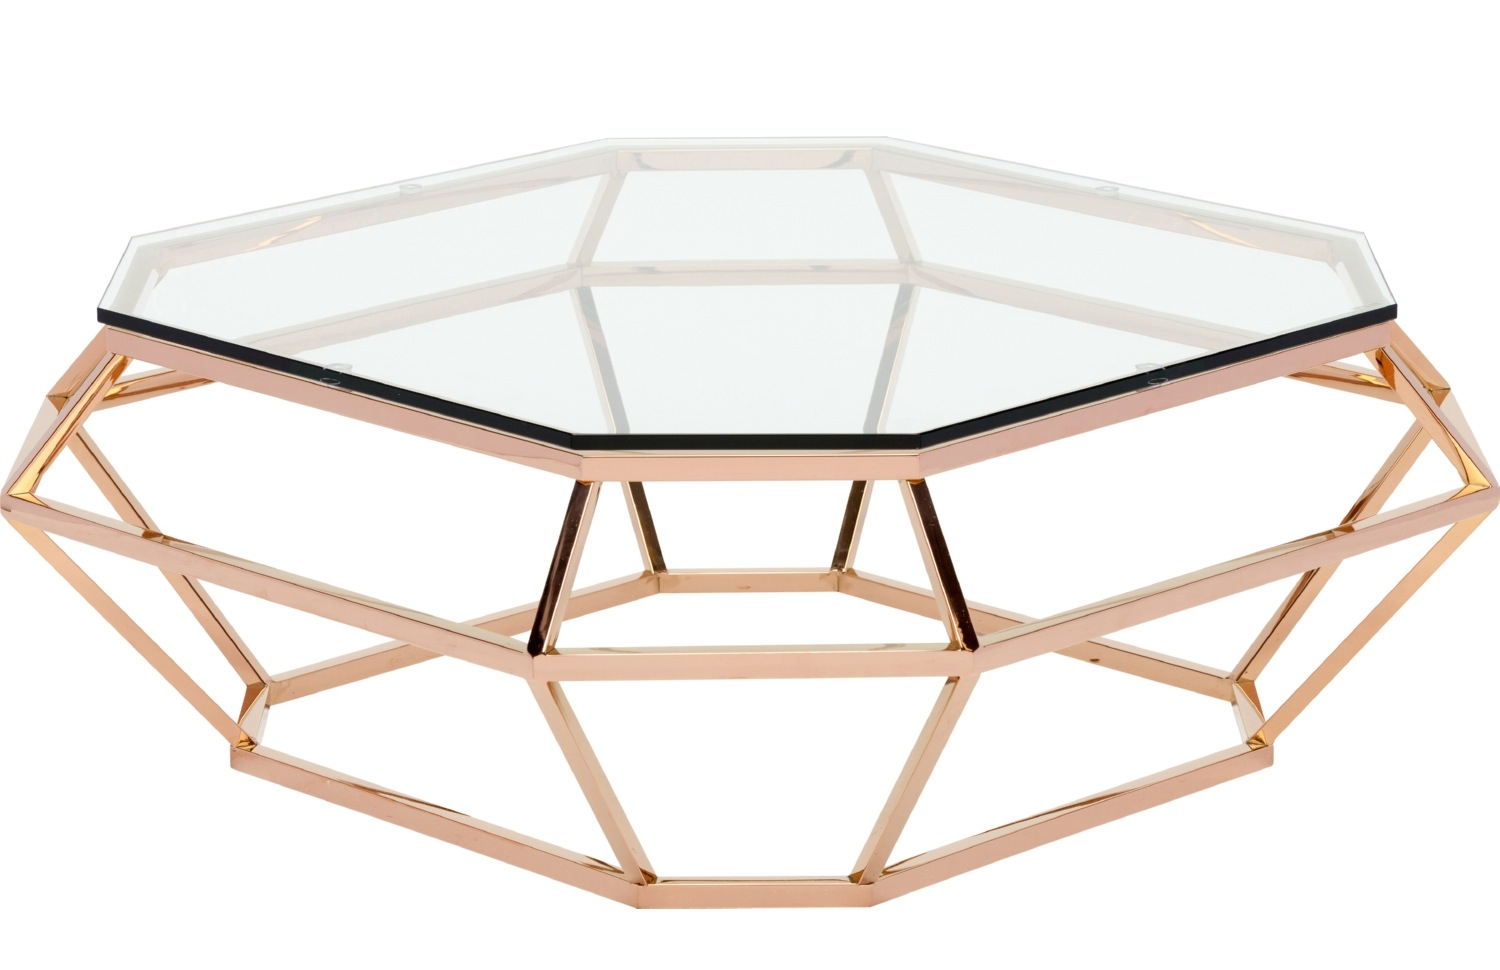 diamond-square-coffee-table-rose-gold-finish.jpg